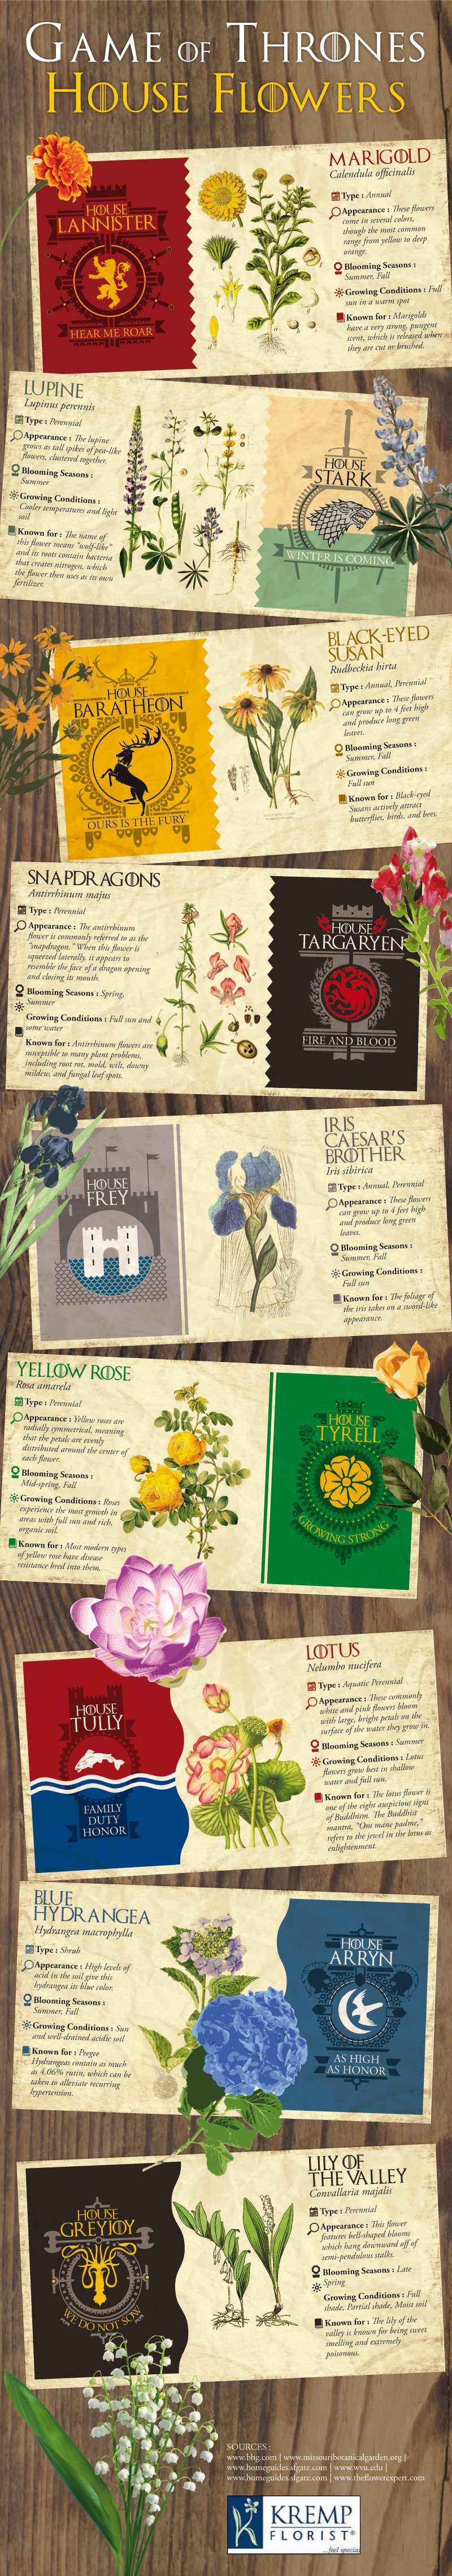 Game Of Thrones House Flowers